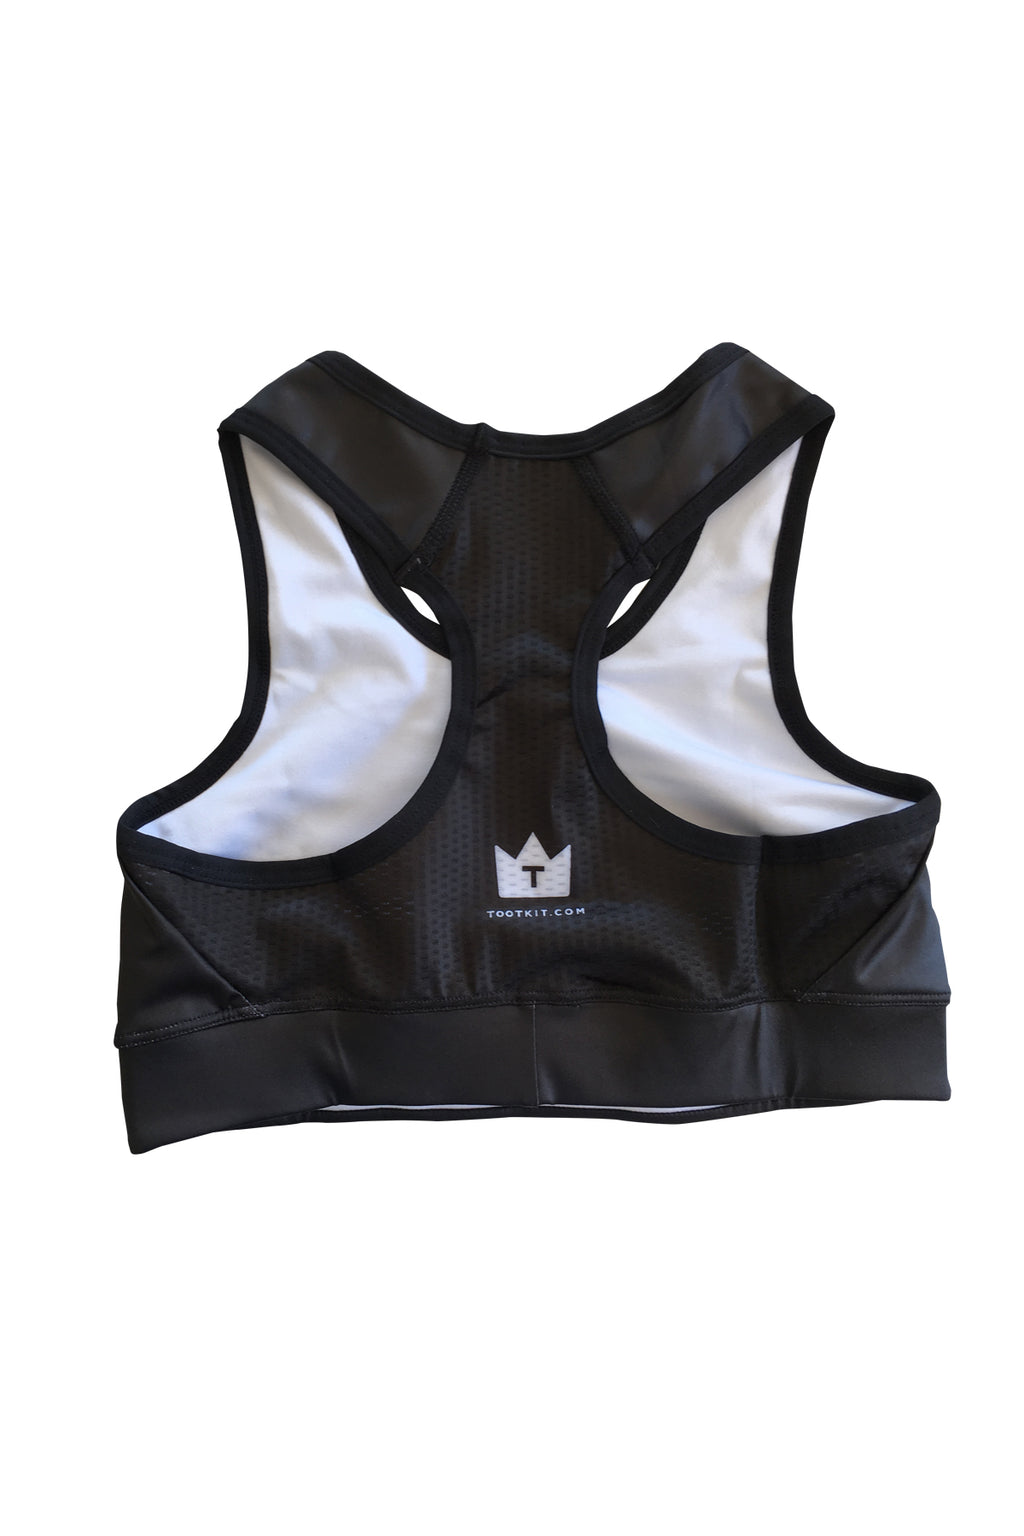 TOOT - SPORTS BRA - Black/White